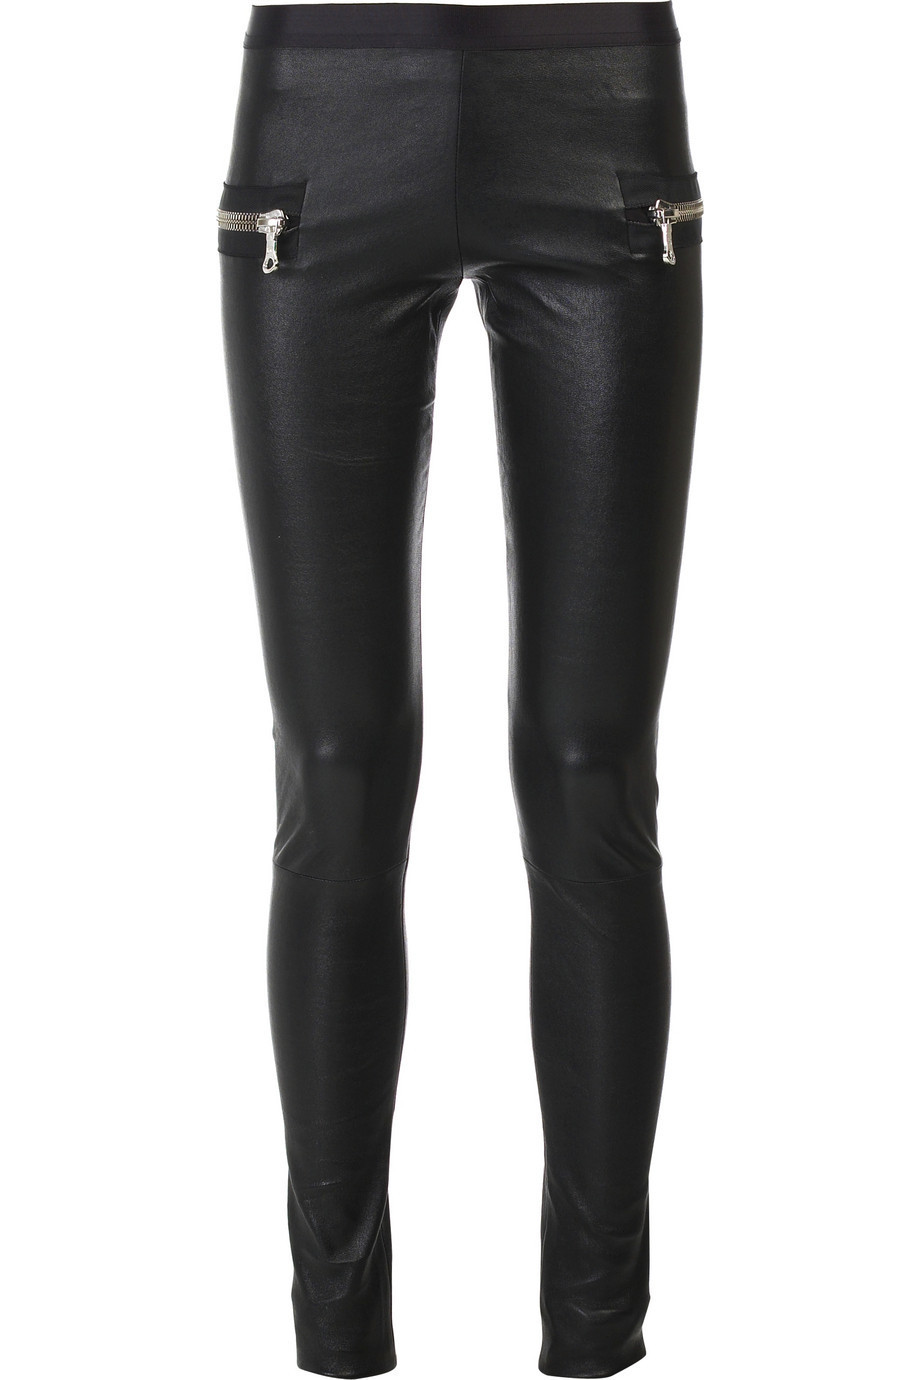 Les Chiffoniers Leather leggings | NET-A-PORTER.COM